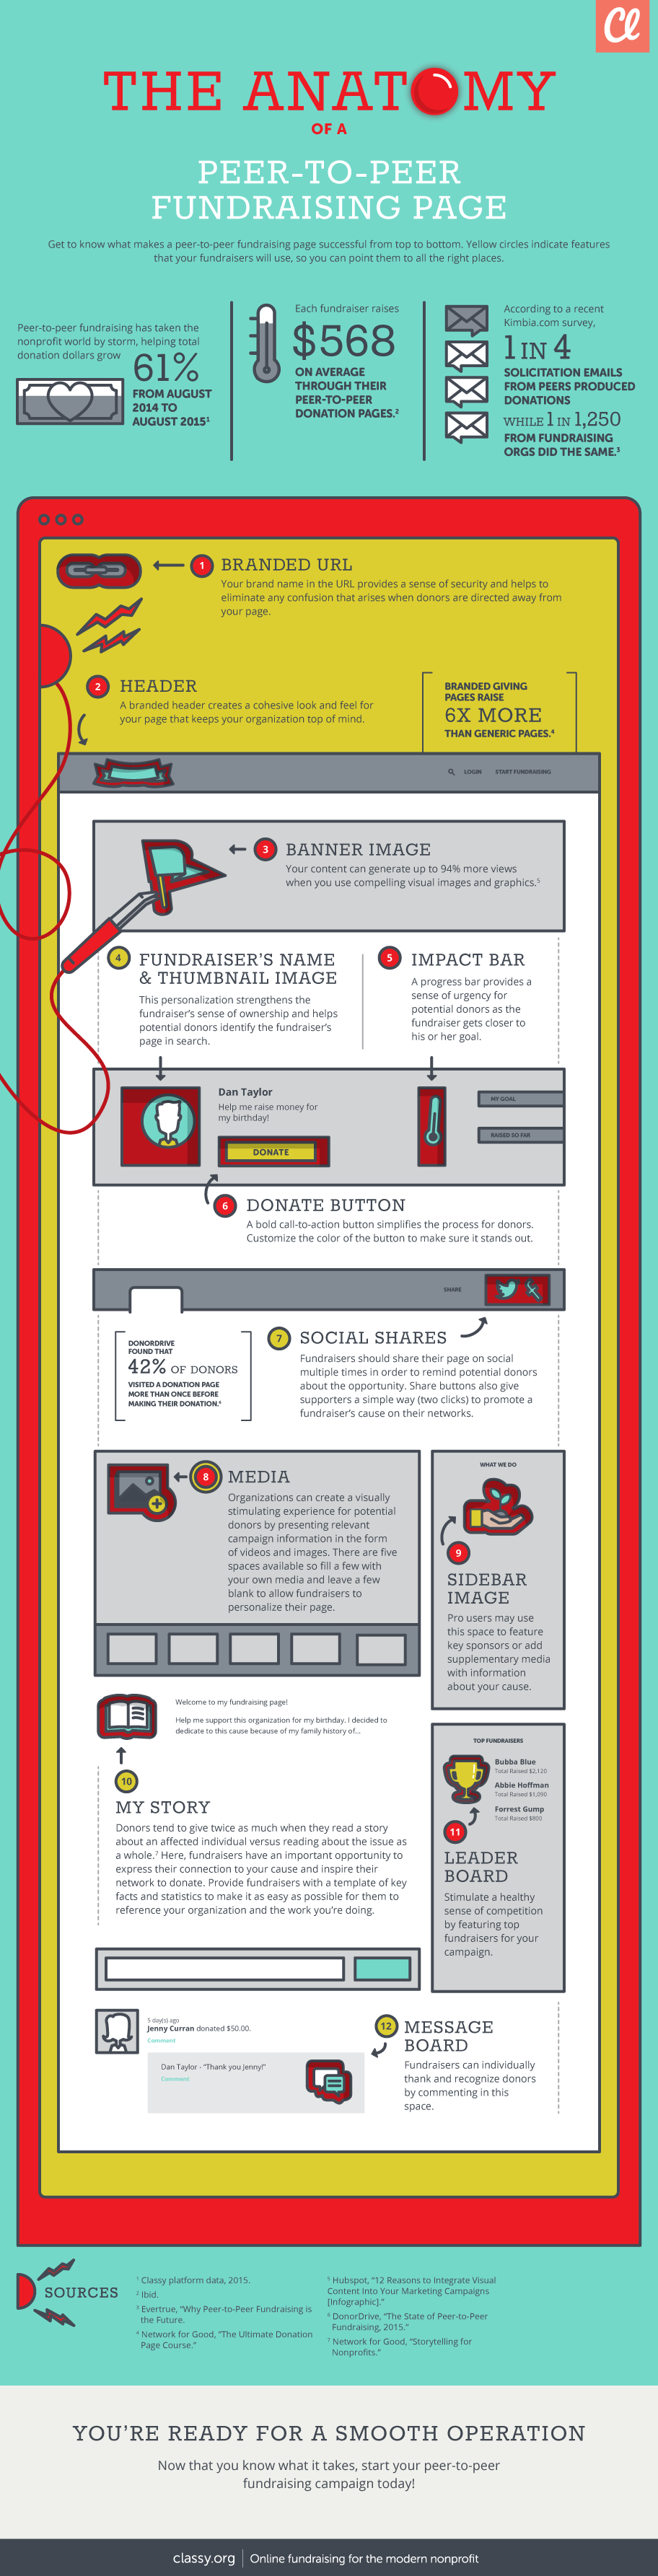 infographic-anatomy-p2p-classy - Best practices, tips and ...